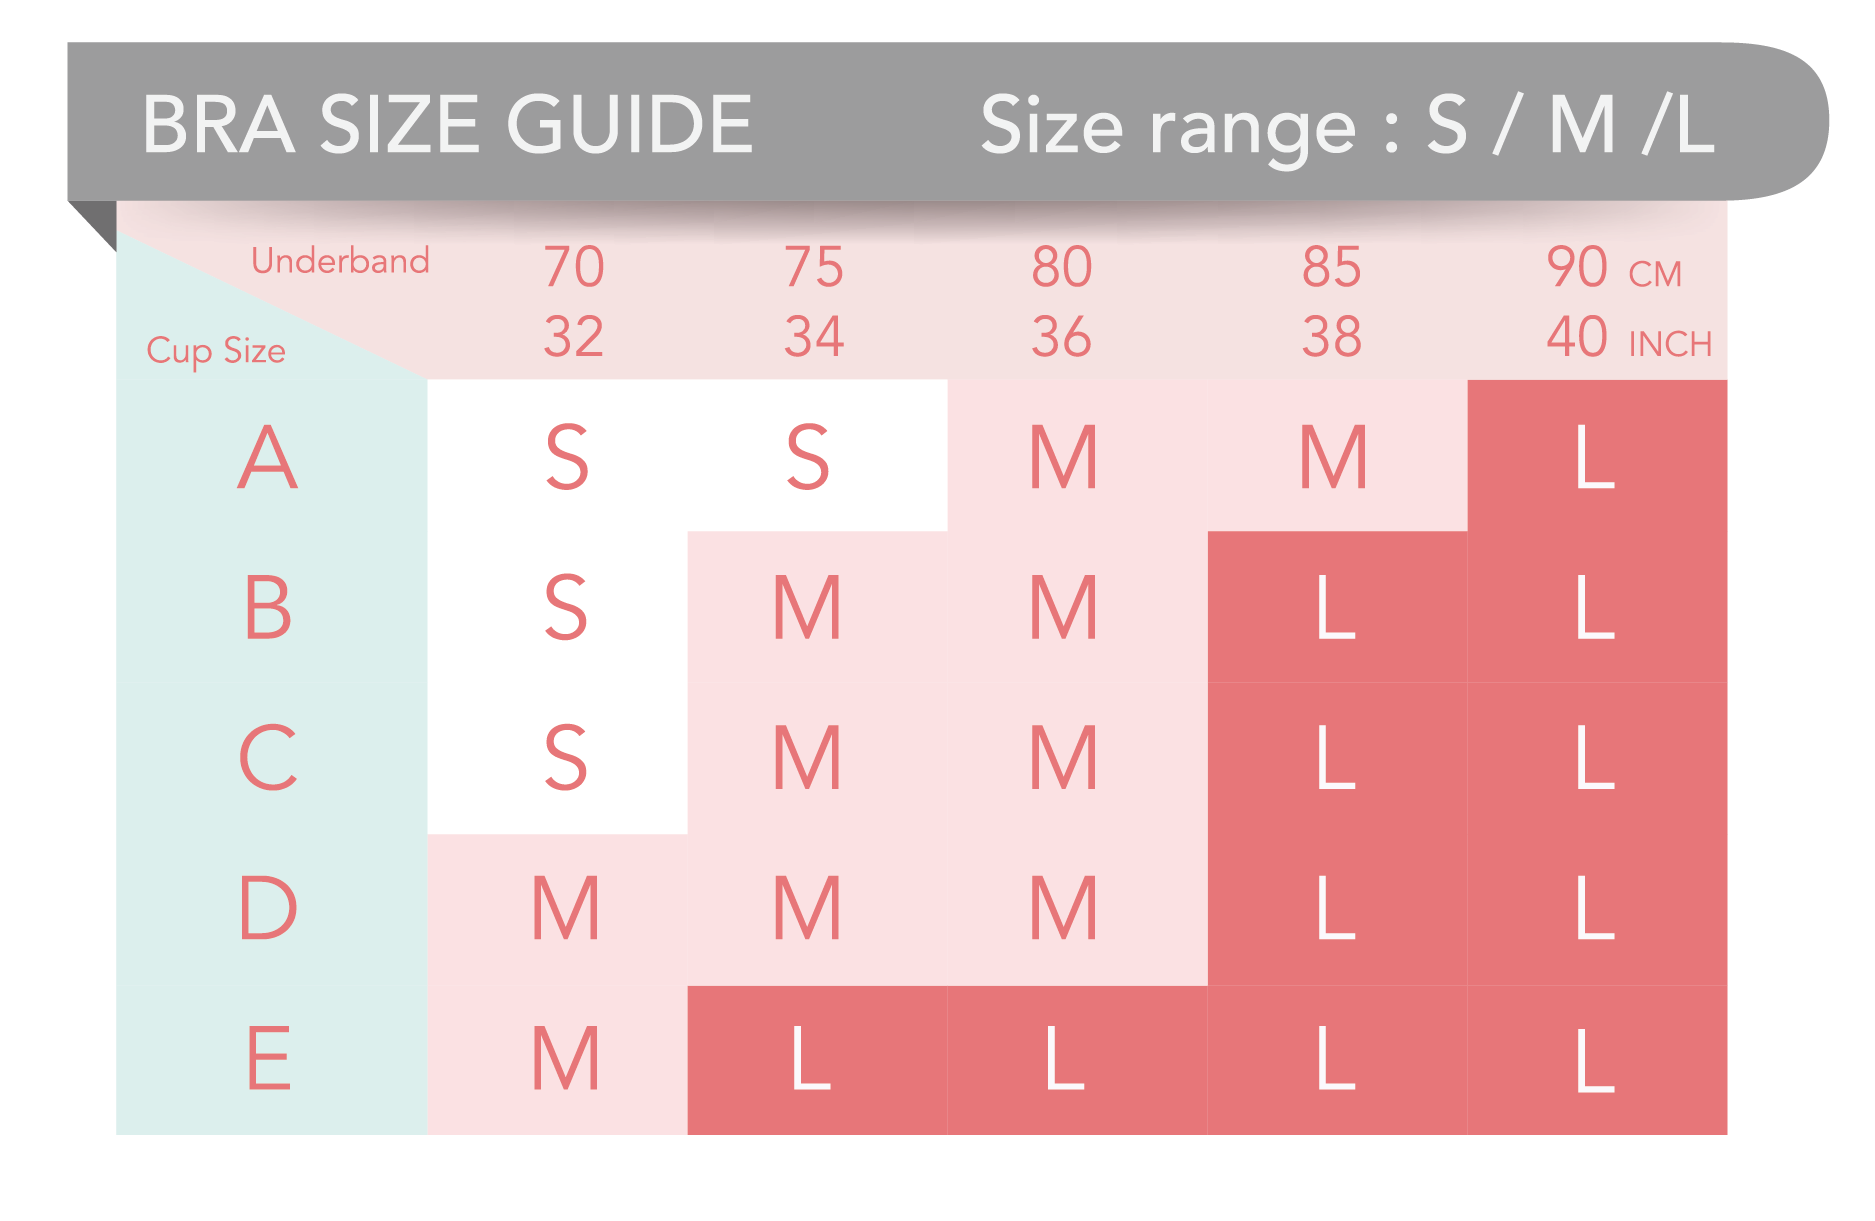 Maternity Bra Size Guide Table